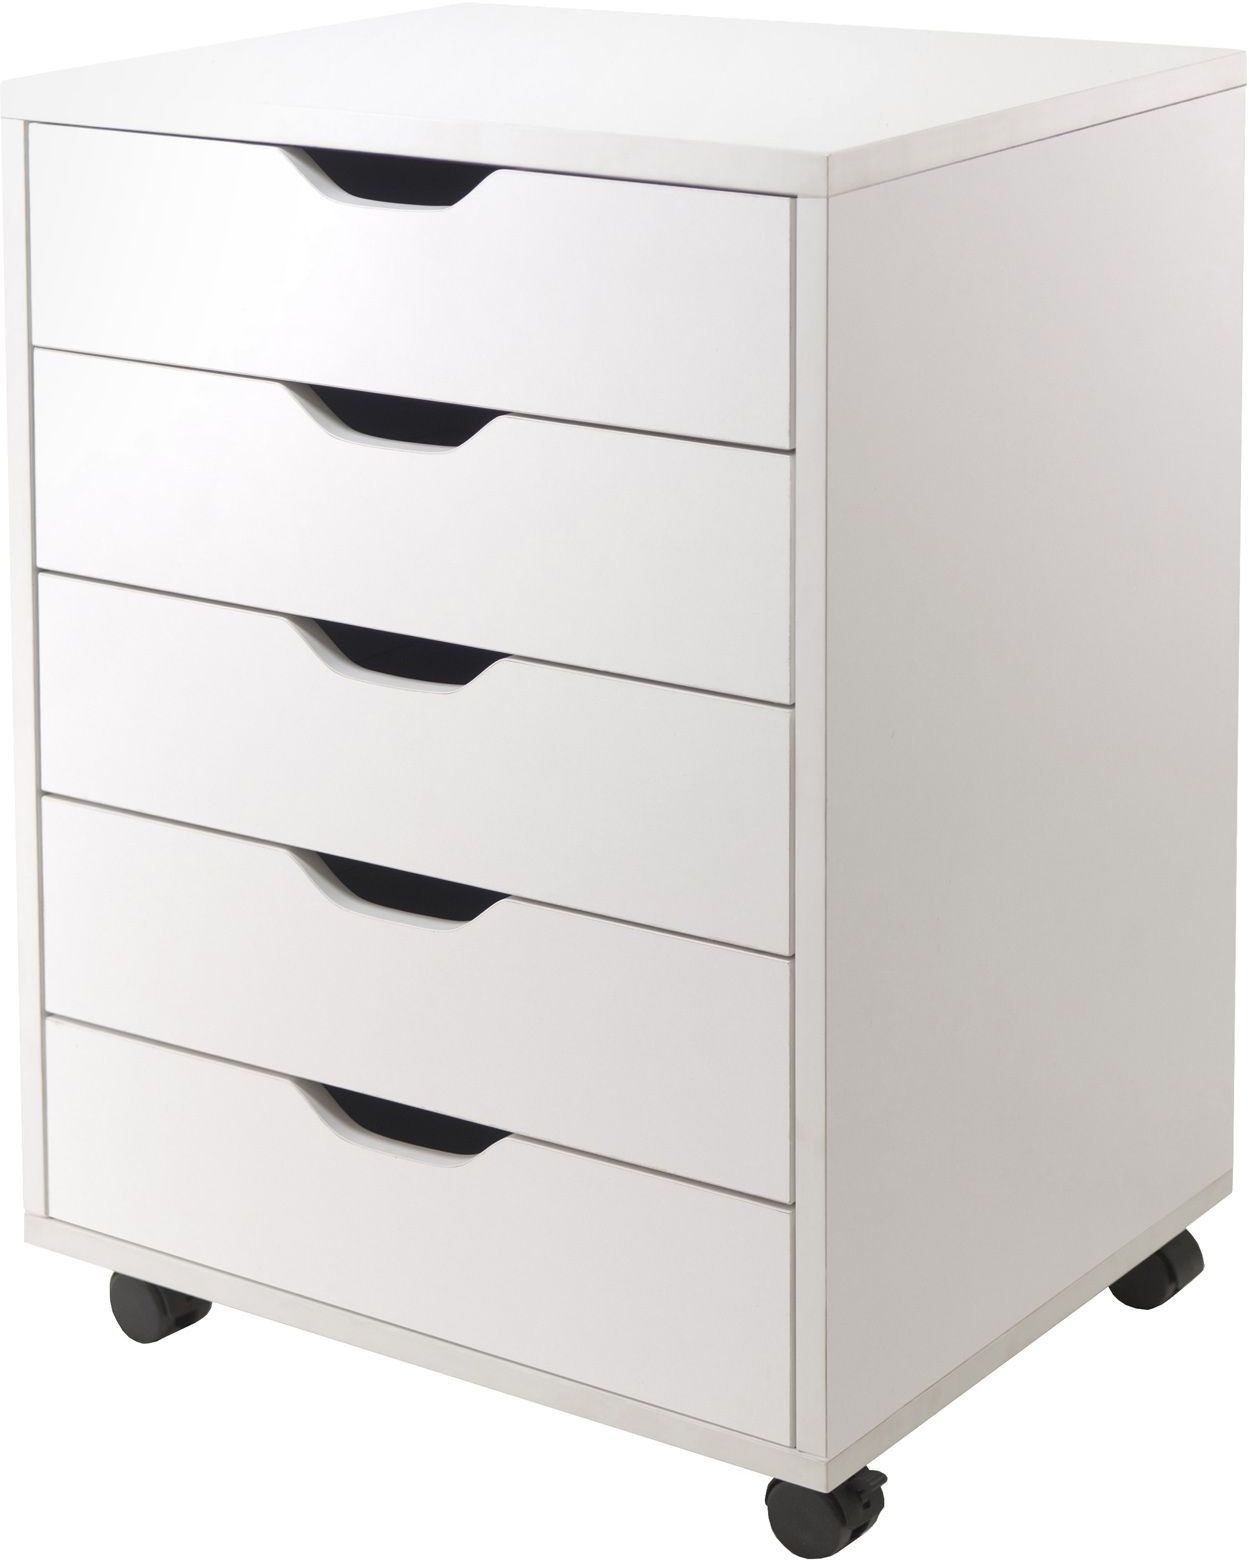 Halifax White 5 Drawer Cabinet From WinsomeWood